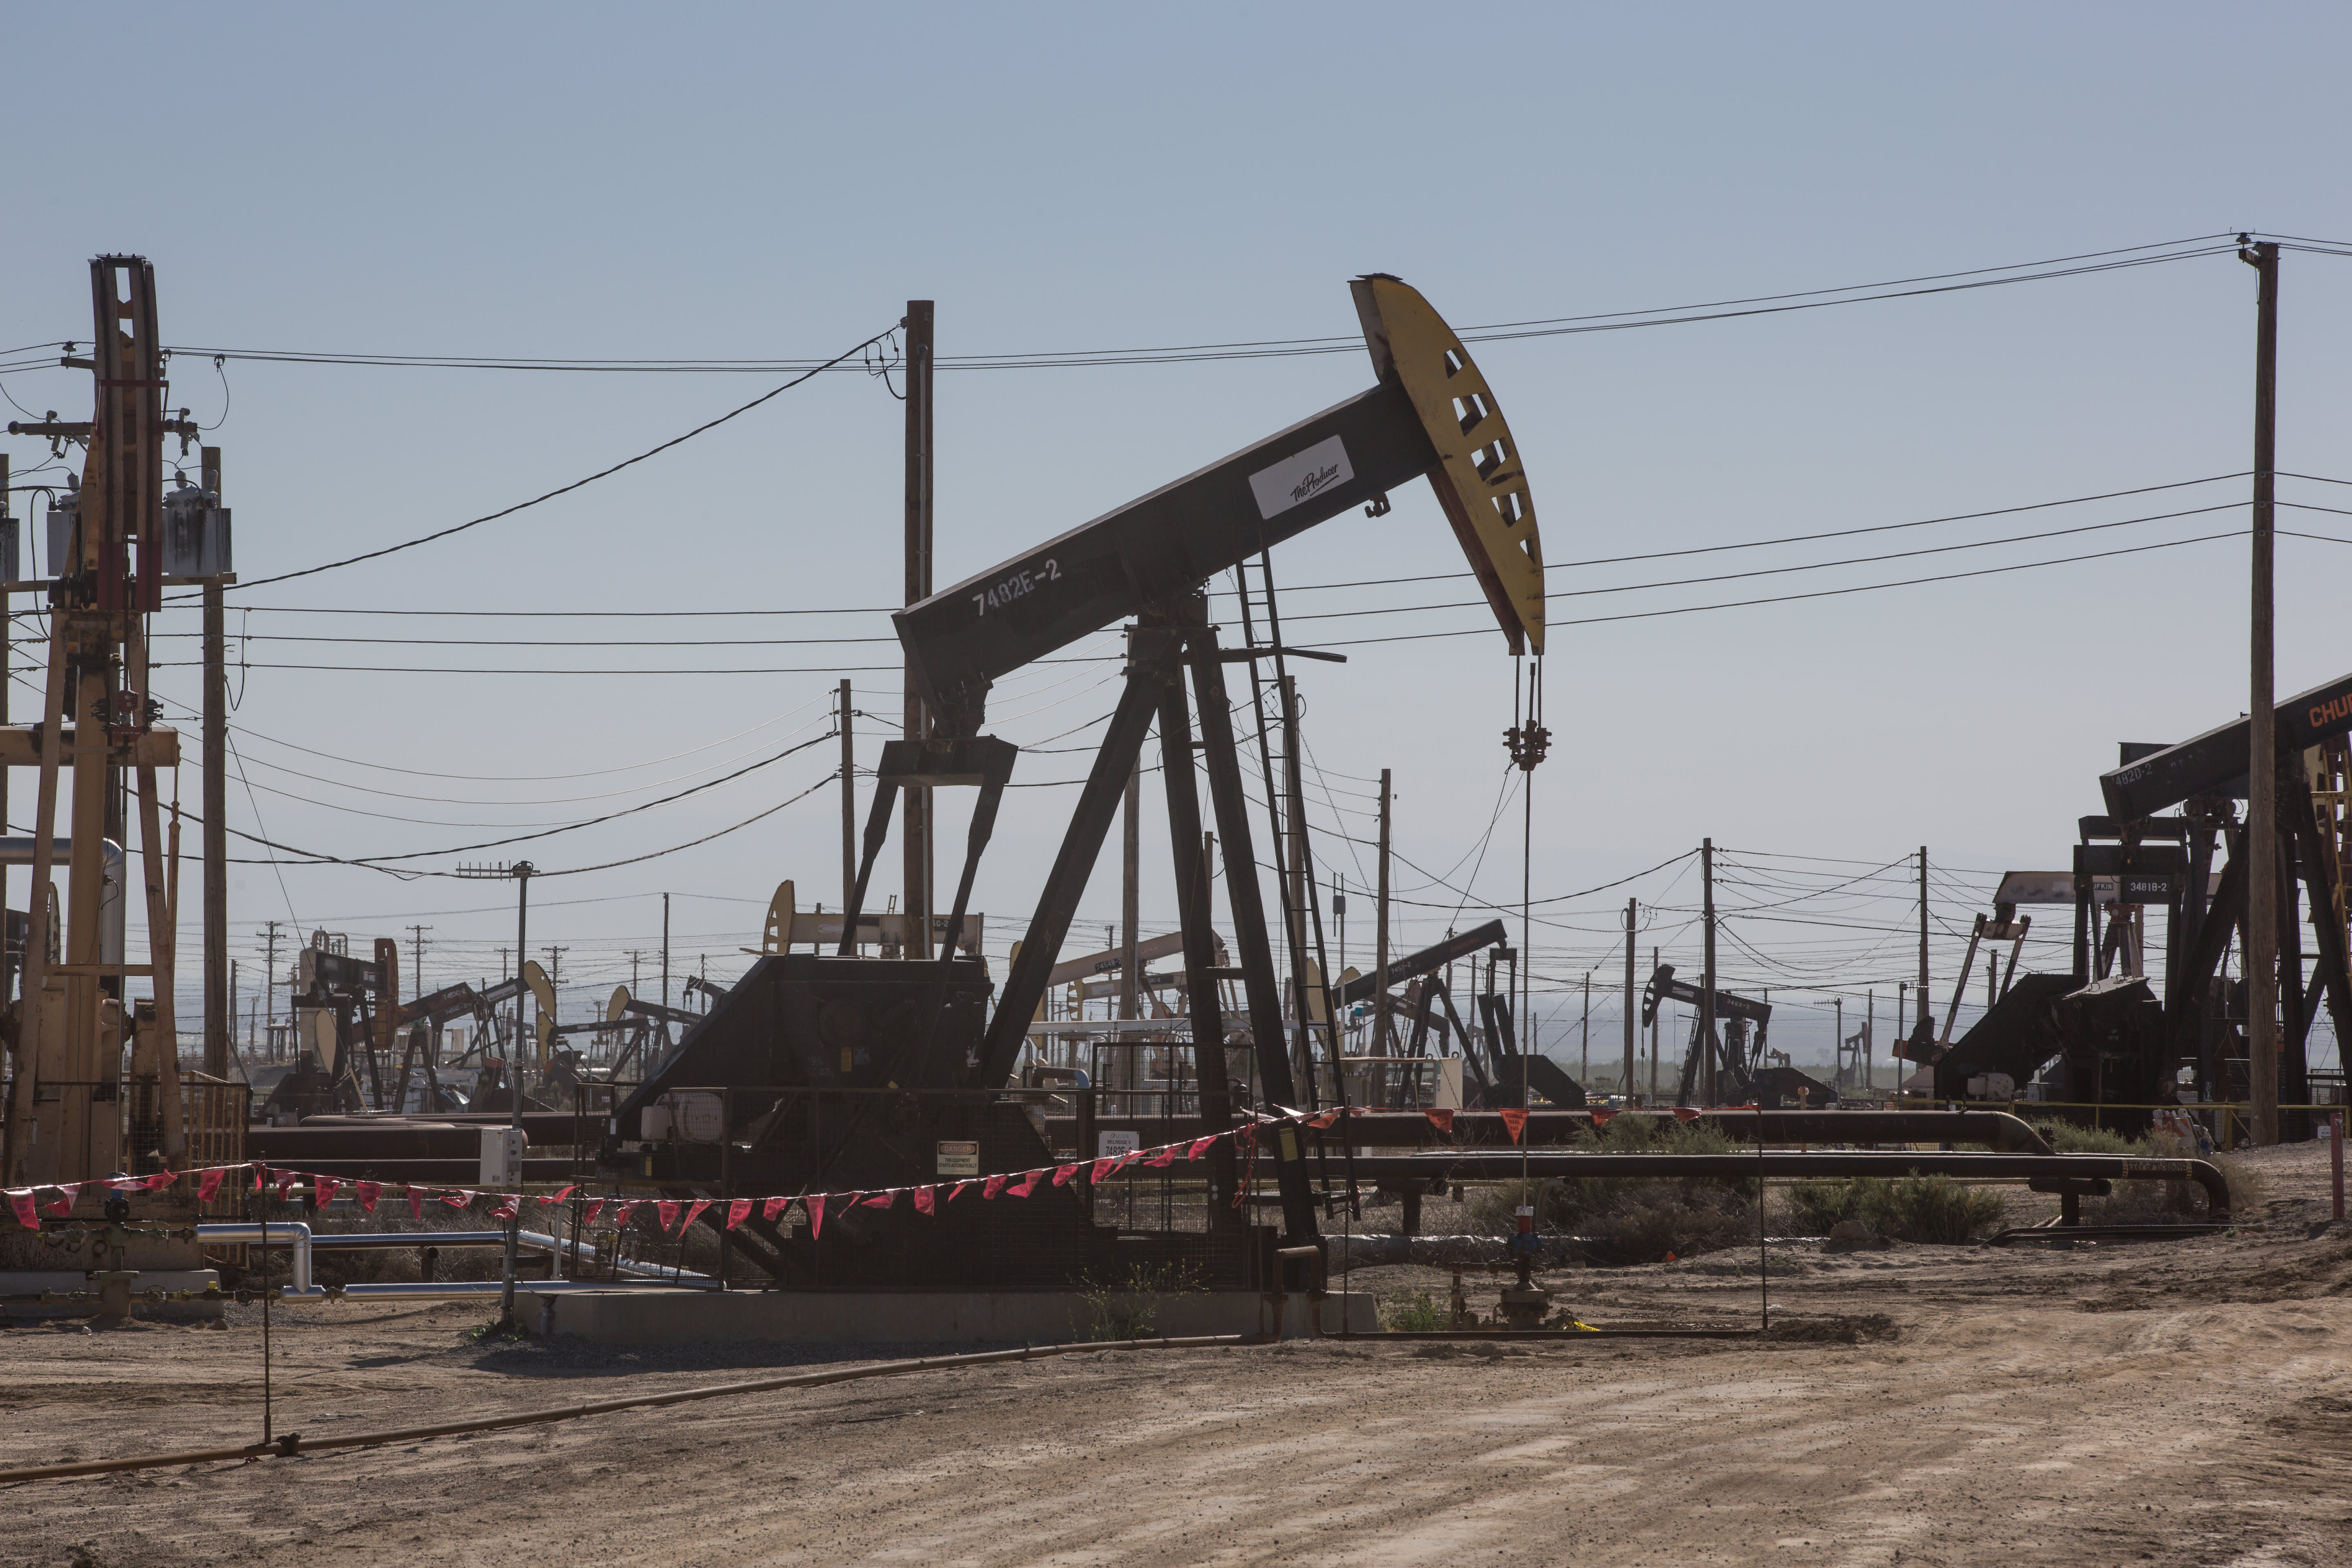 U.S. oil drops 6% to below $70 as OPEC prepares to boost production, Covid concerns weigh